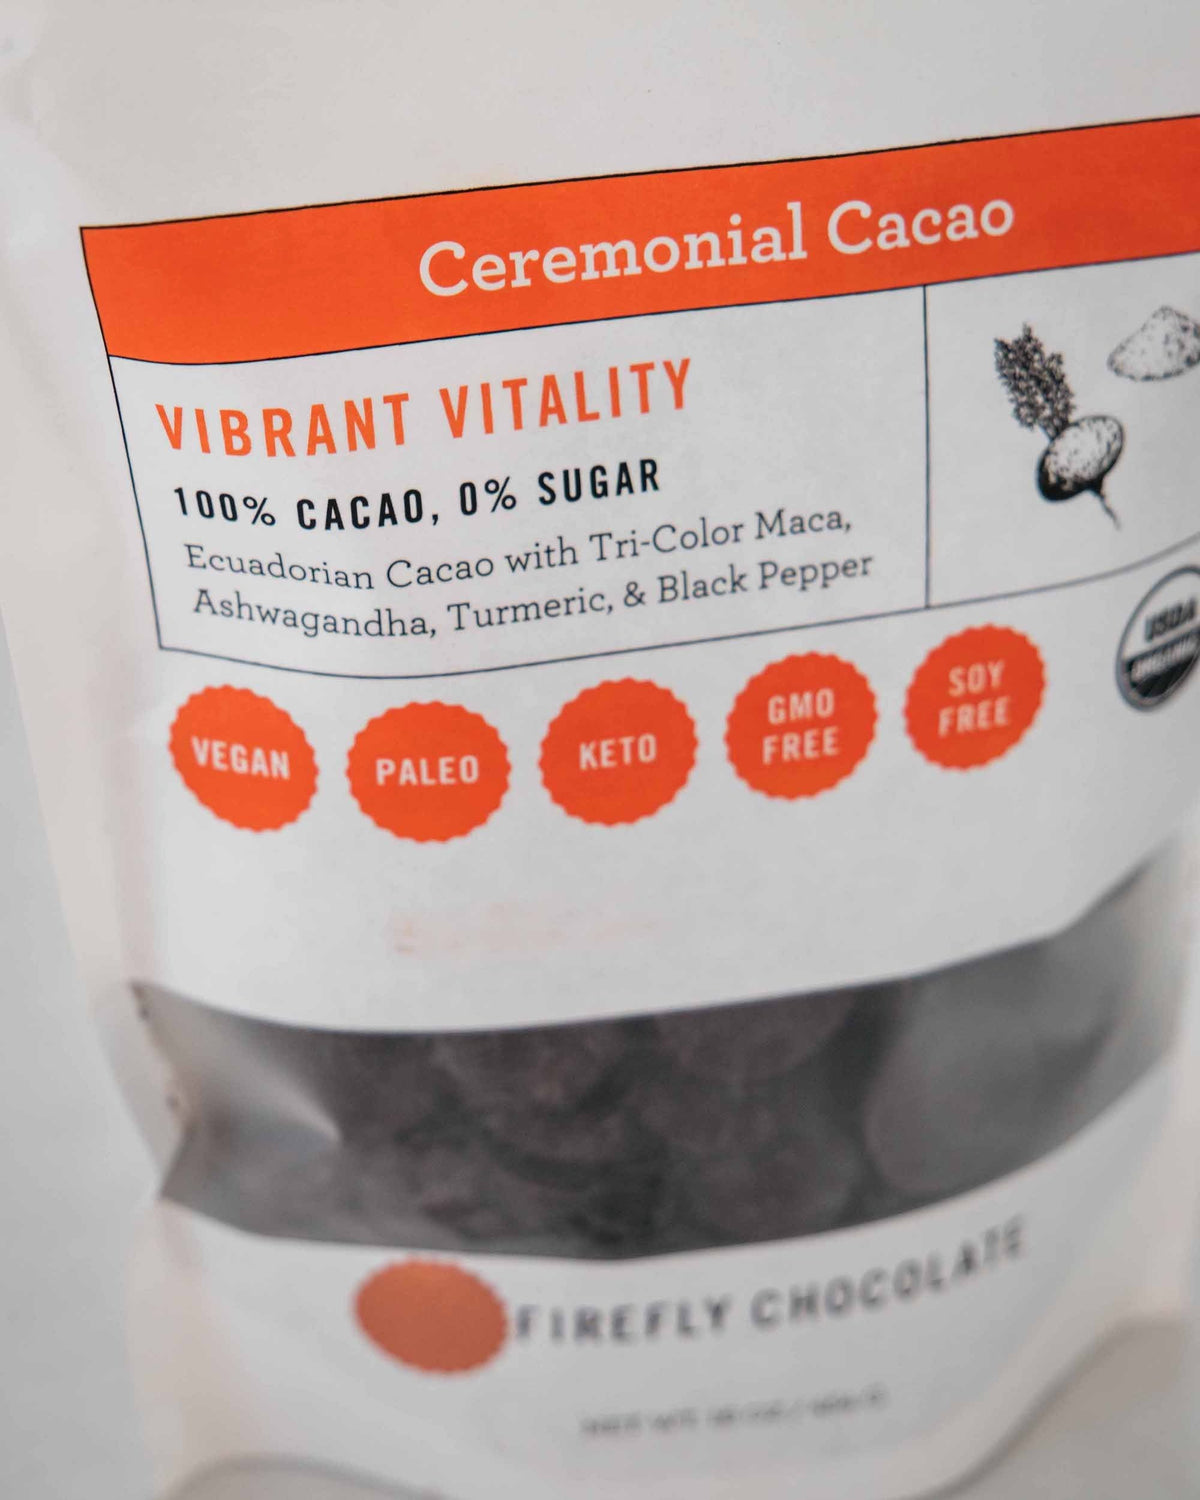 Vibrant Vitality 100% Ceremonial Cacao Drink for Cacao Ceremony and Holistic Health by FireflyChocolate